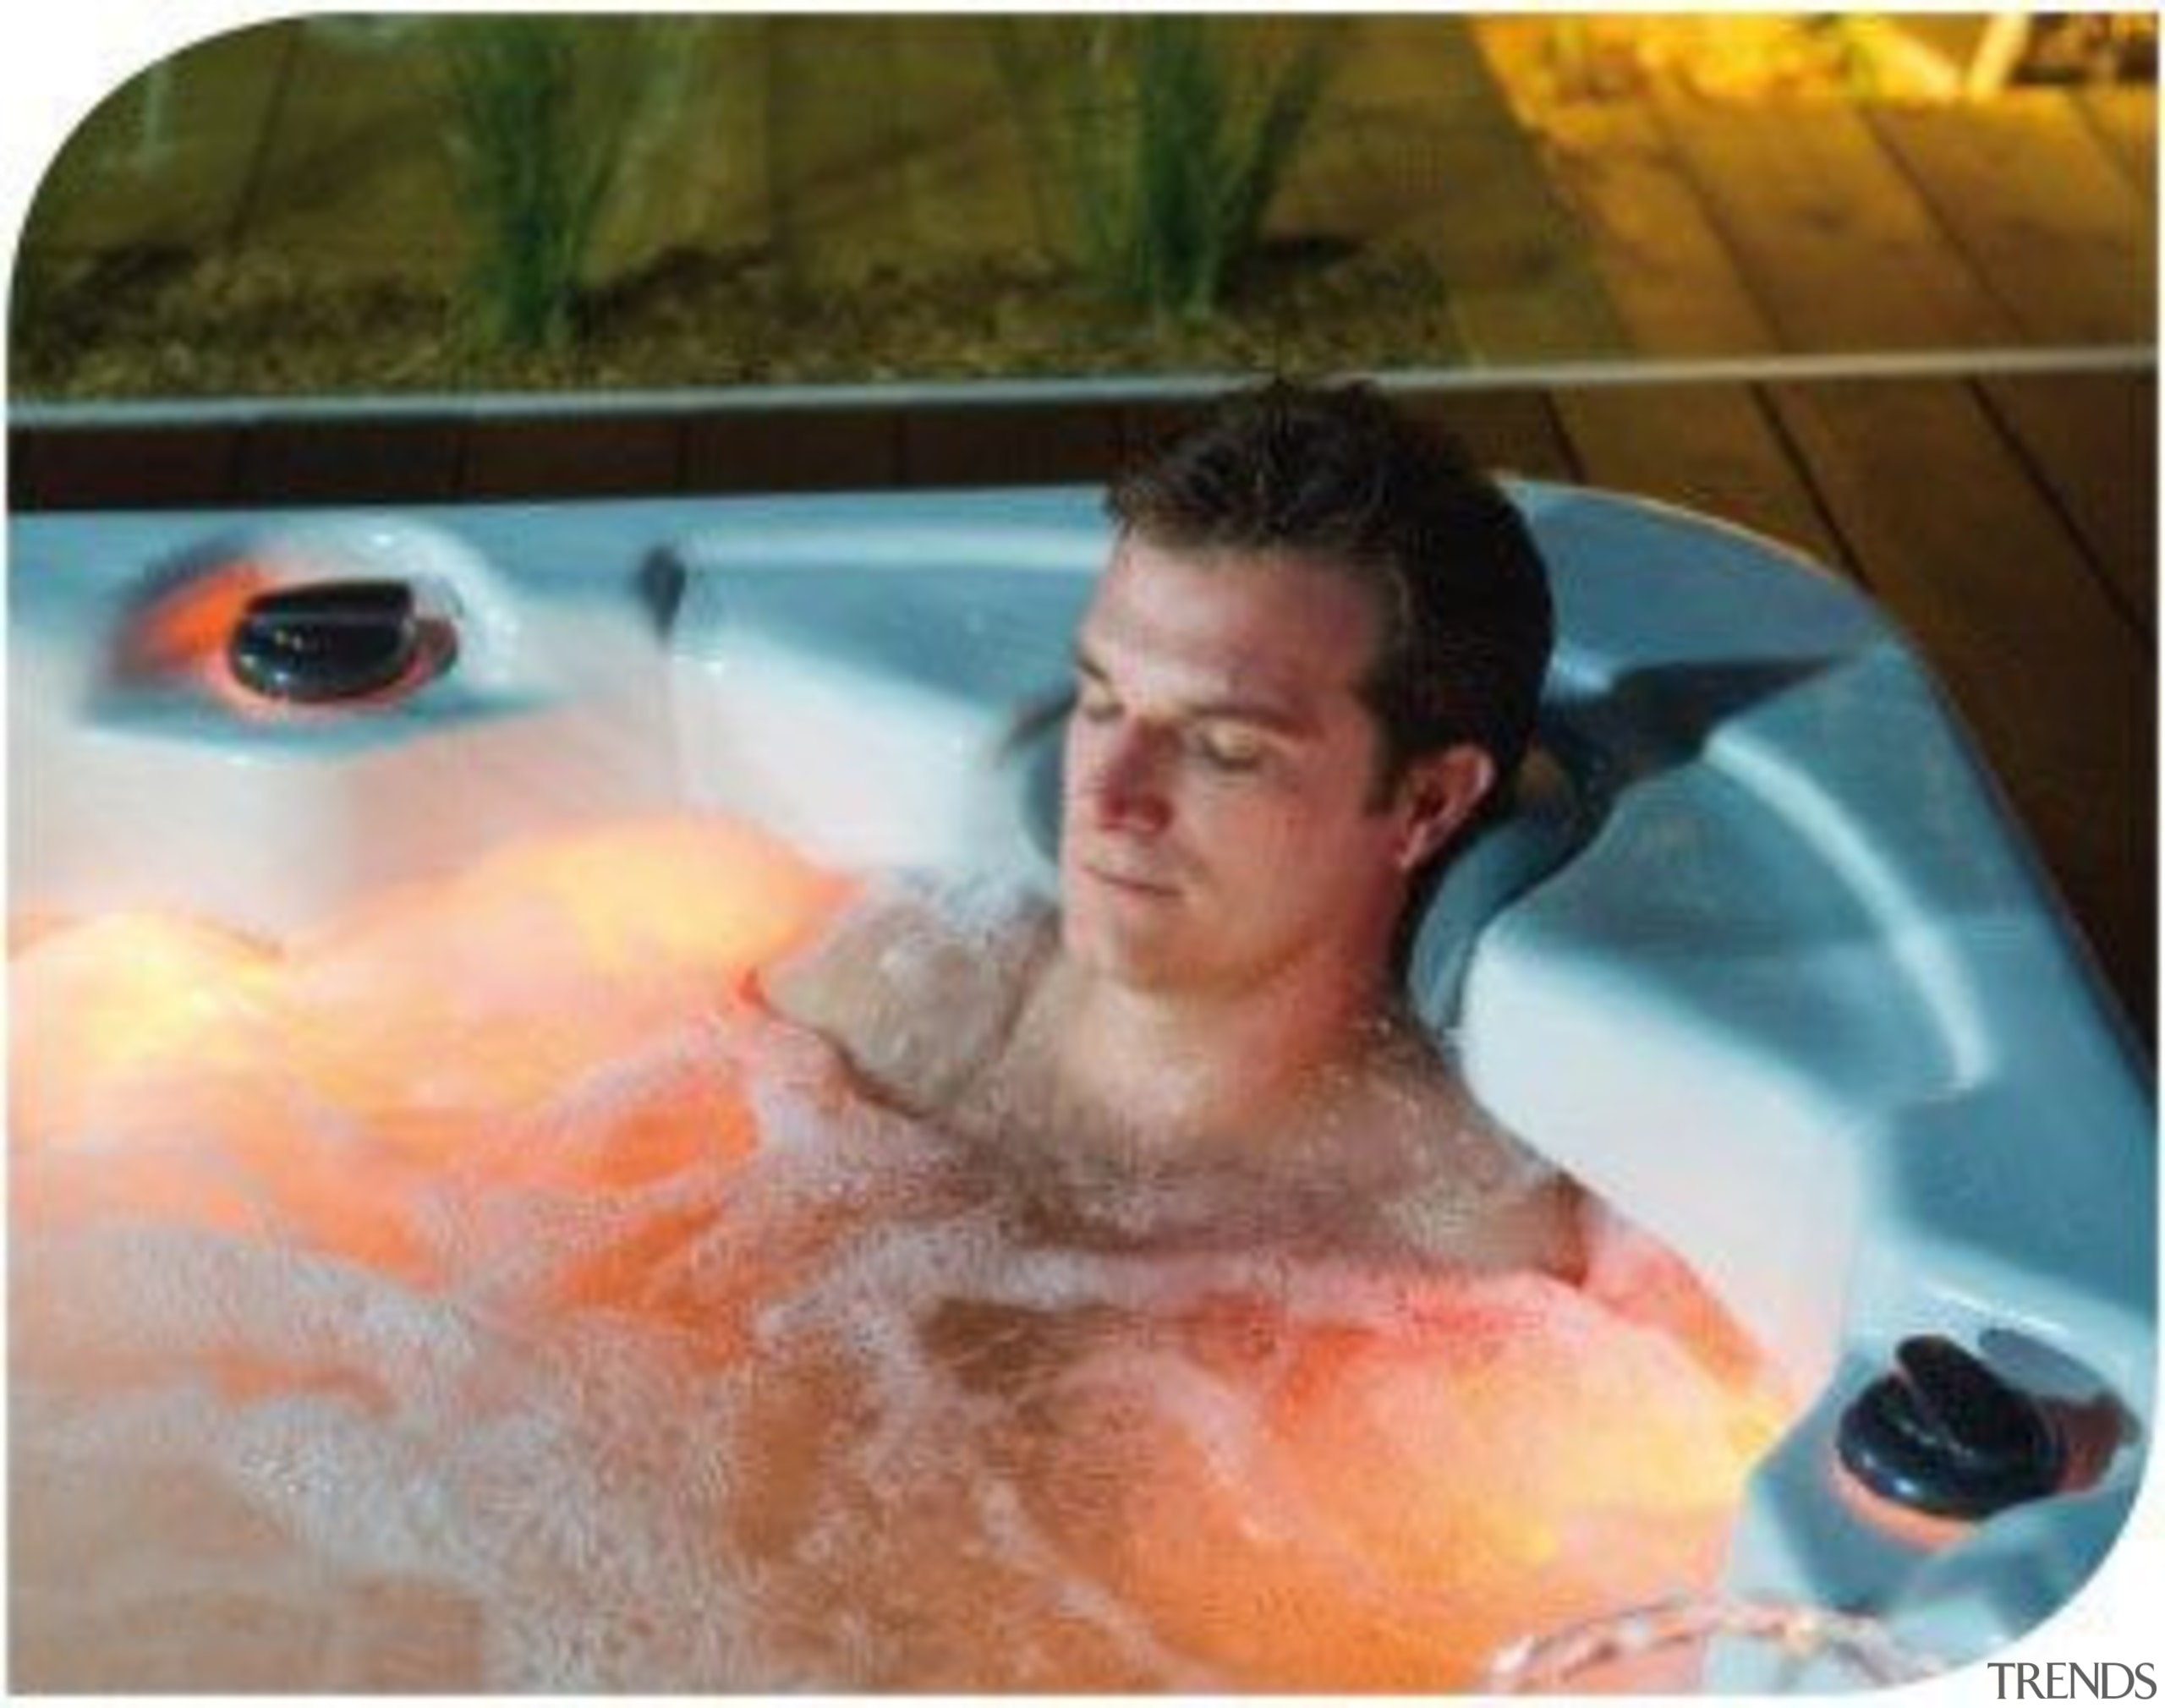 LED Lighting - LED Lighting - bathtub | bathtub, hot tub, leisure, swimming pool, water